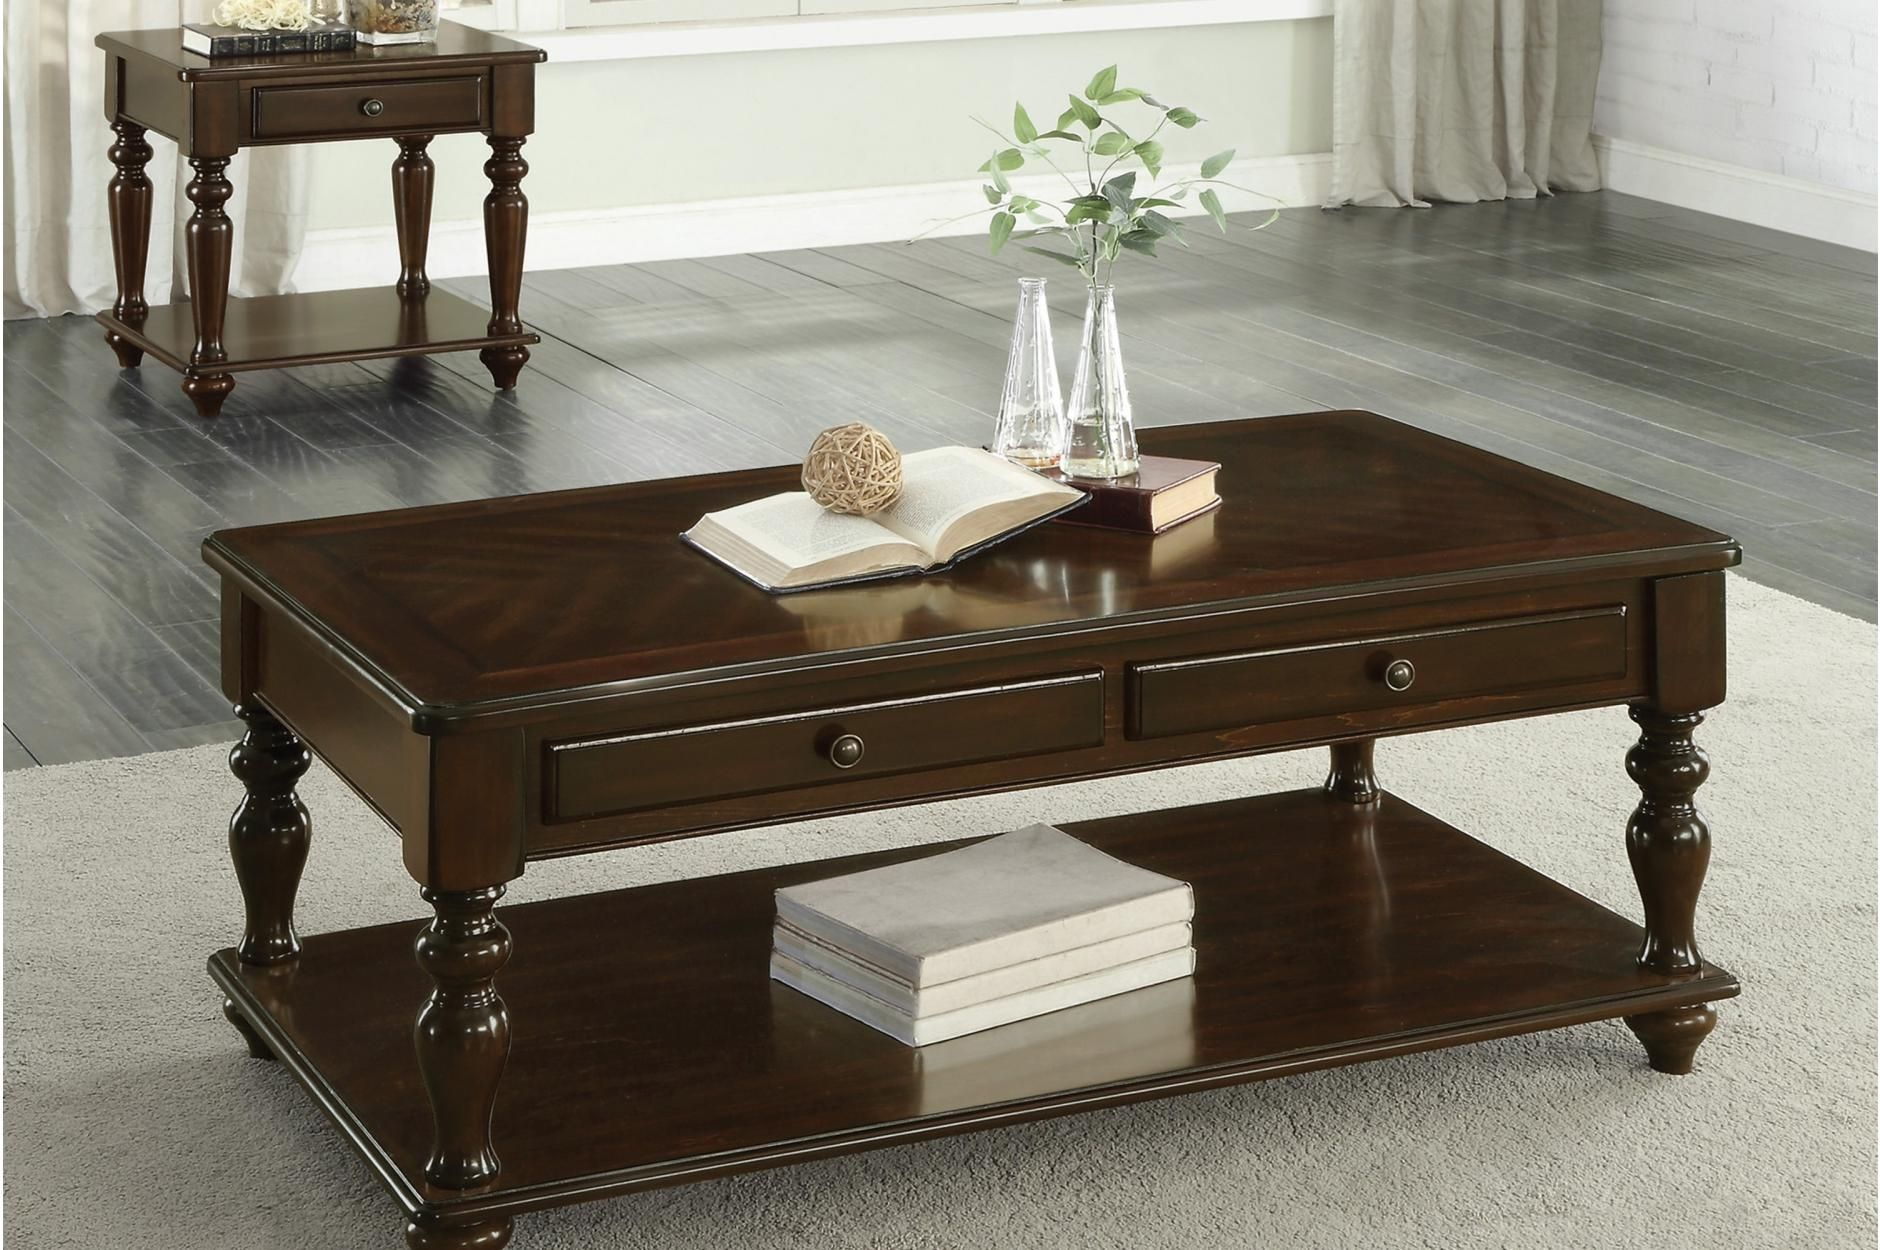 Lovington Wood Occasional Table Set Lift Top Coffee Table End Tables With Drawers Table